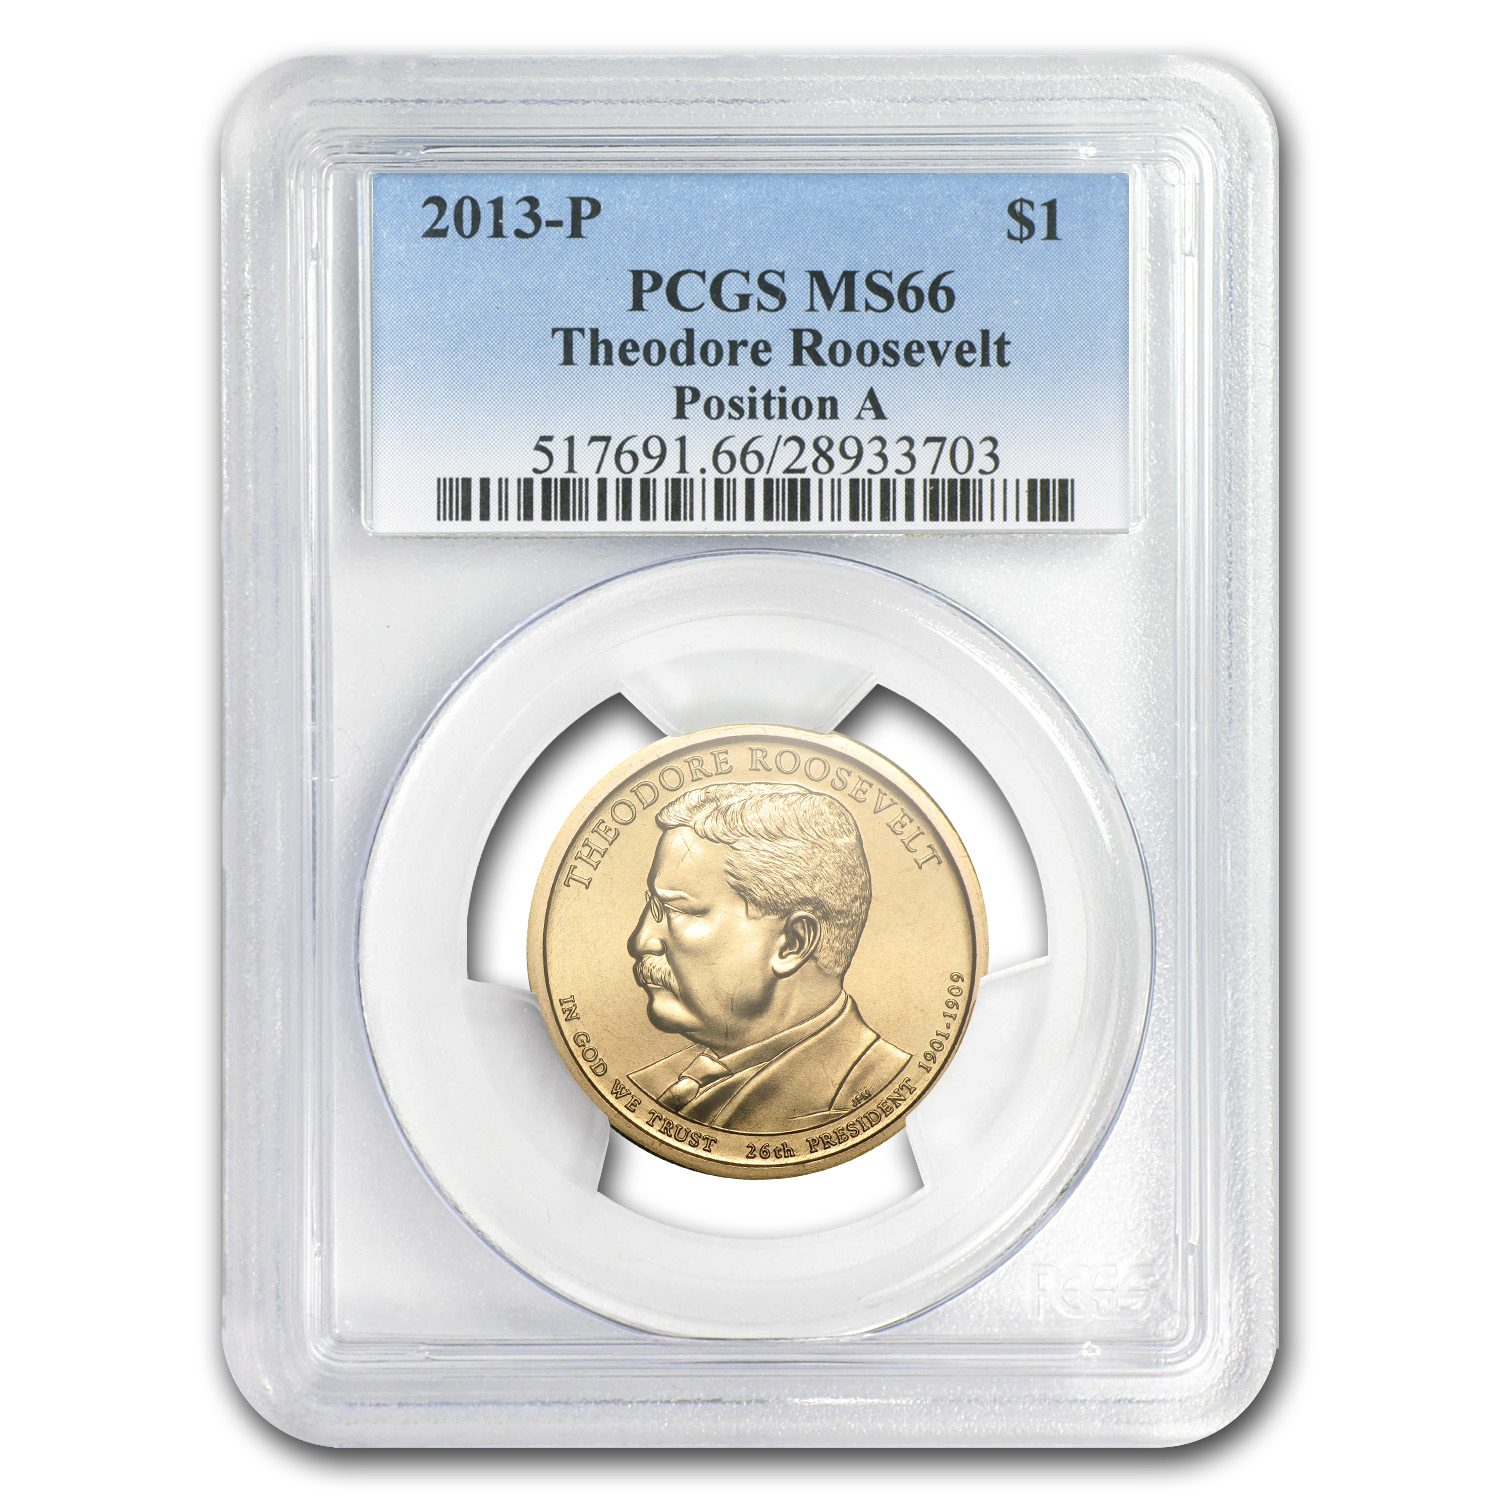 2013-P A Position T. Roosevelt Presidential Dollar MS-66 PCGS